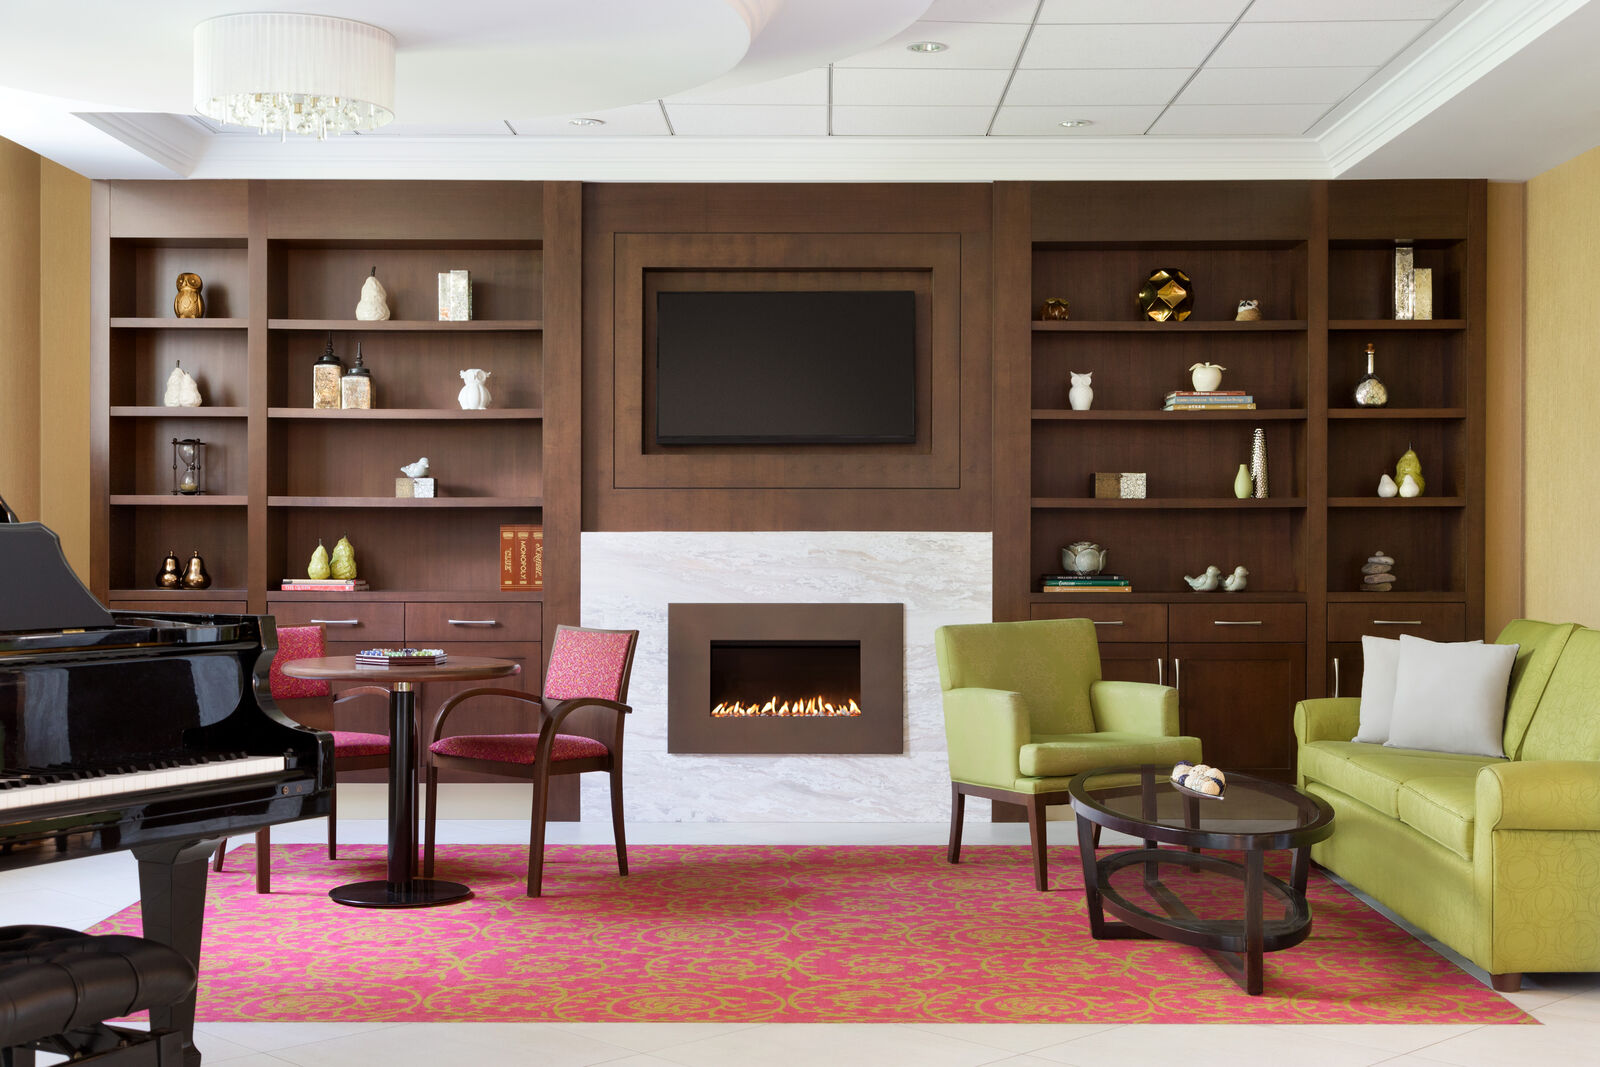 Seating area at Amica Unionville's Bistro: at the back there is a dark wooden closet with decorative elements on its shelves, a TV and a fireplace, and the room is furnished with couches, armchairs and a piano.